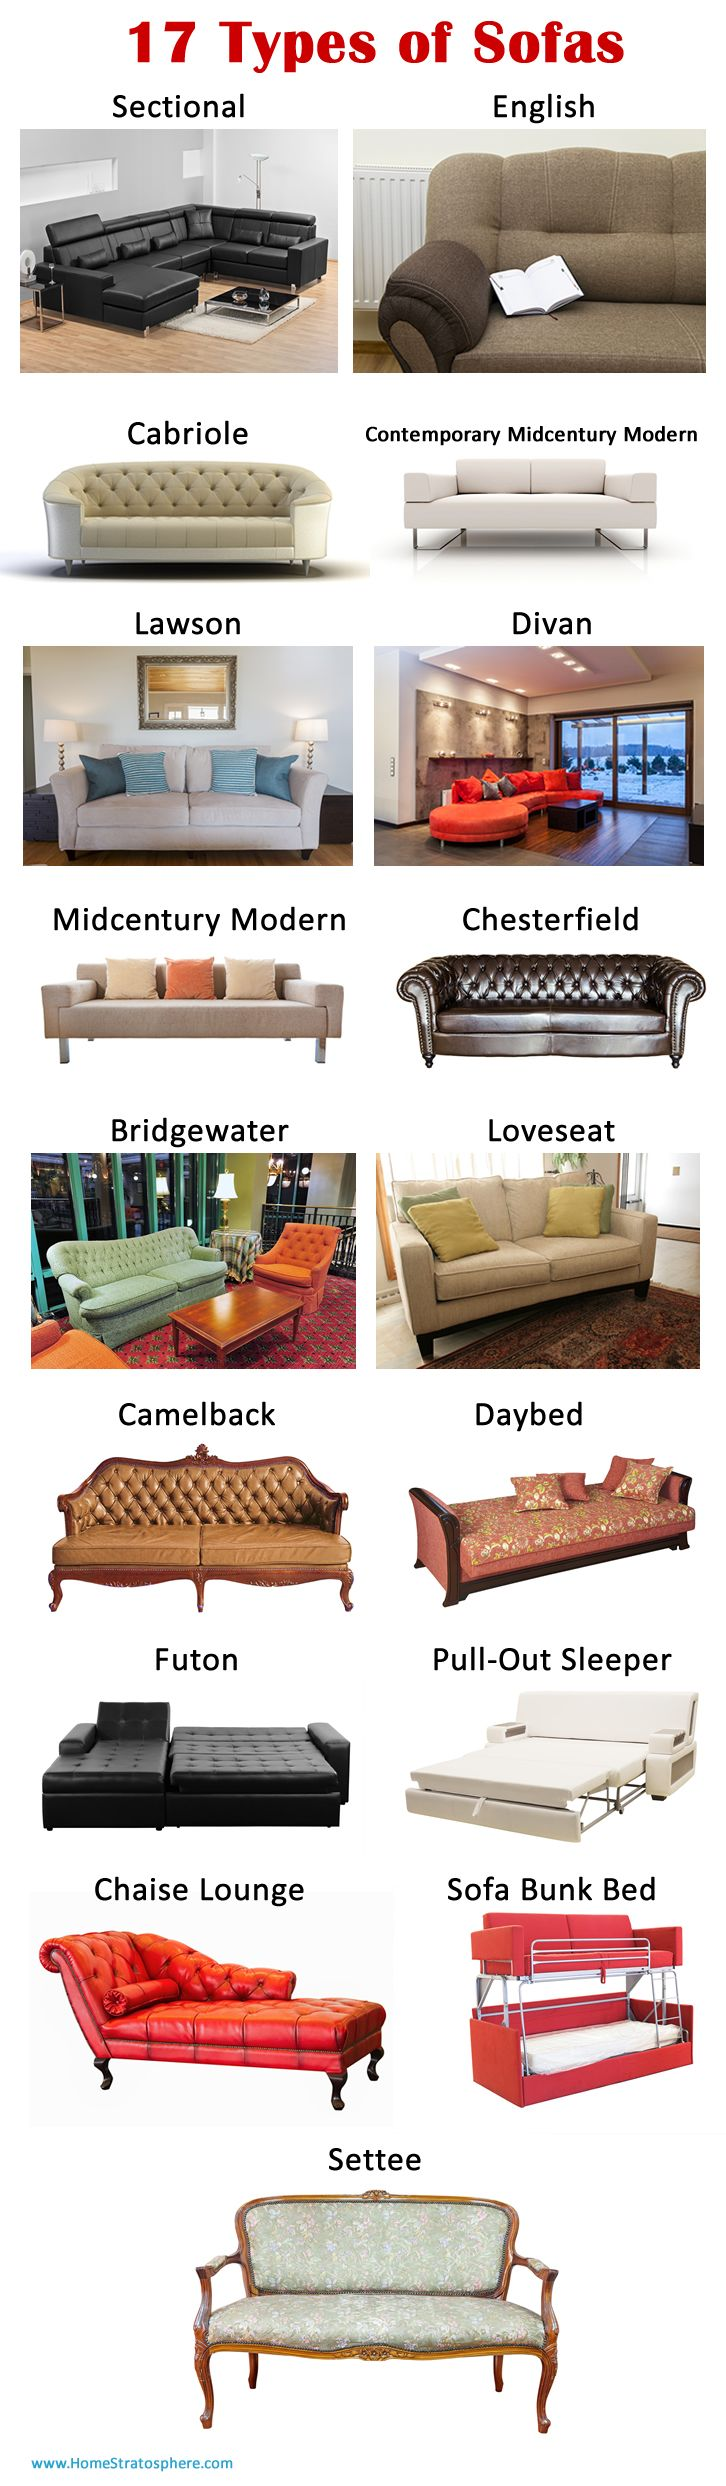 20 Types of Sofas & Couches Explained (WITH PICTURES ...